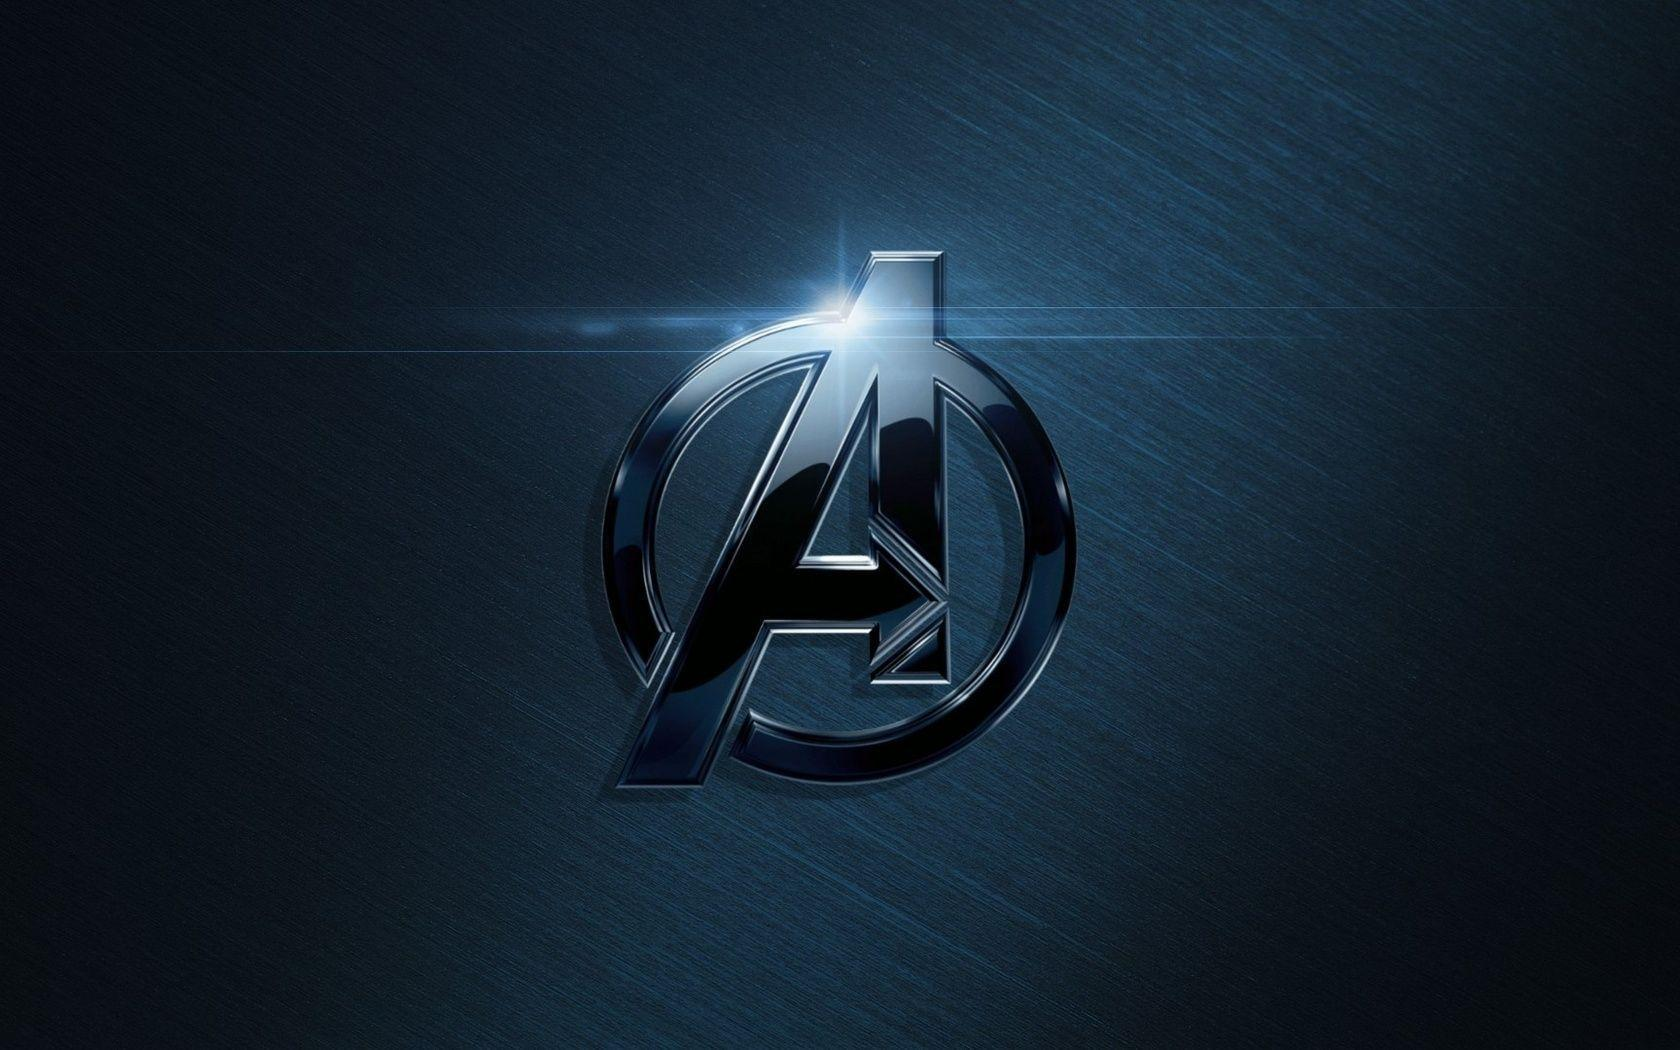 Wallpapers For > Avengers Logo Wallpapers Hd